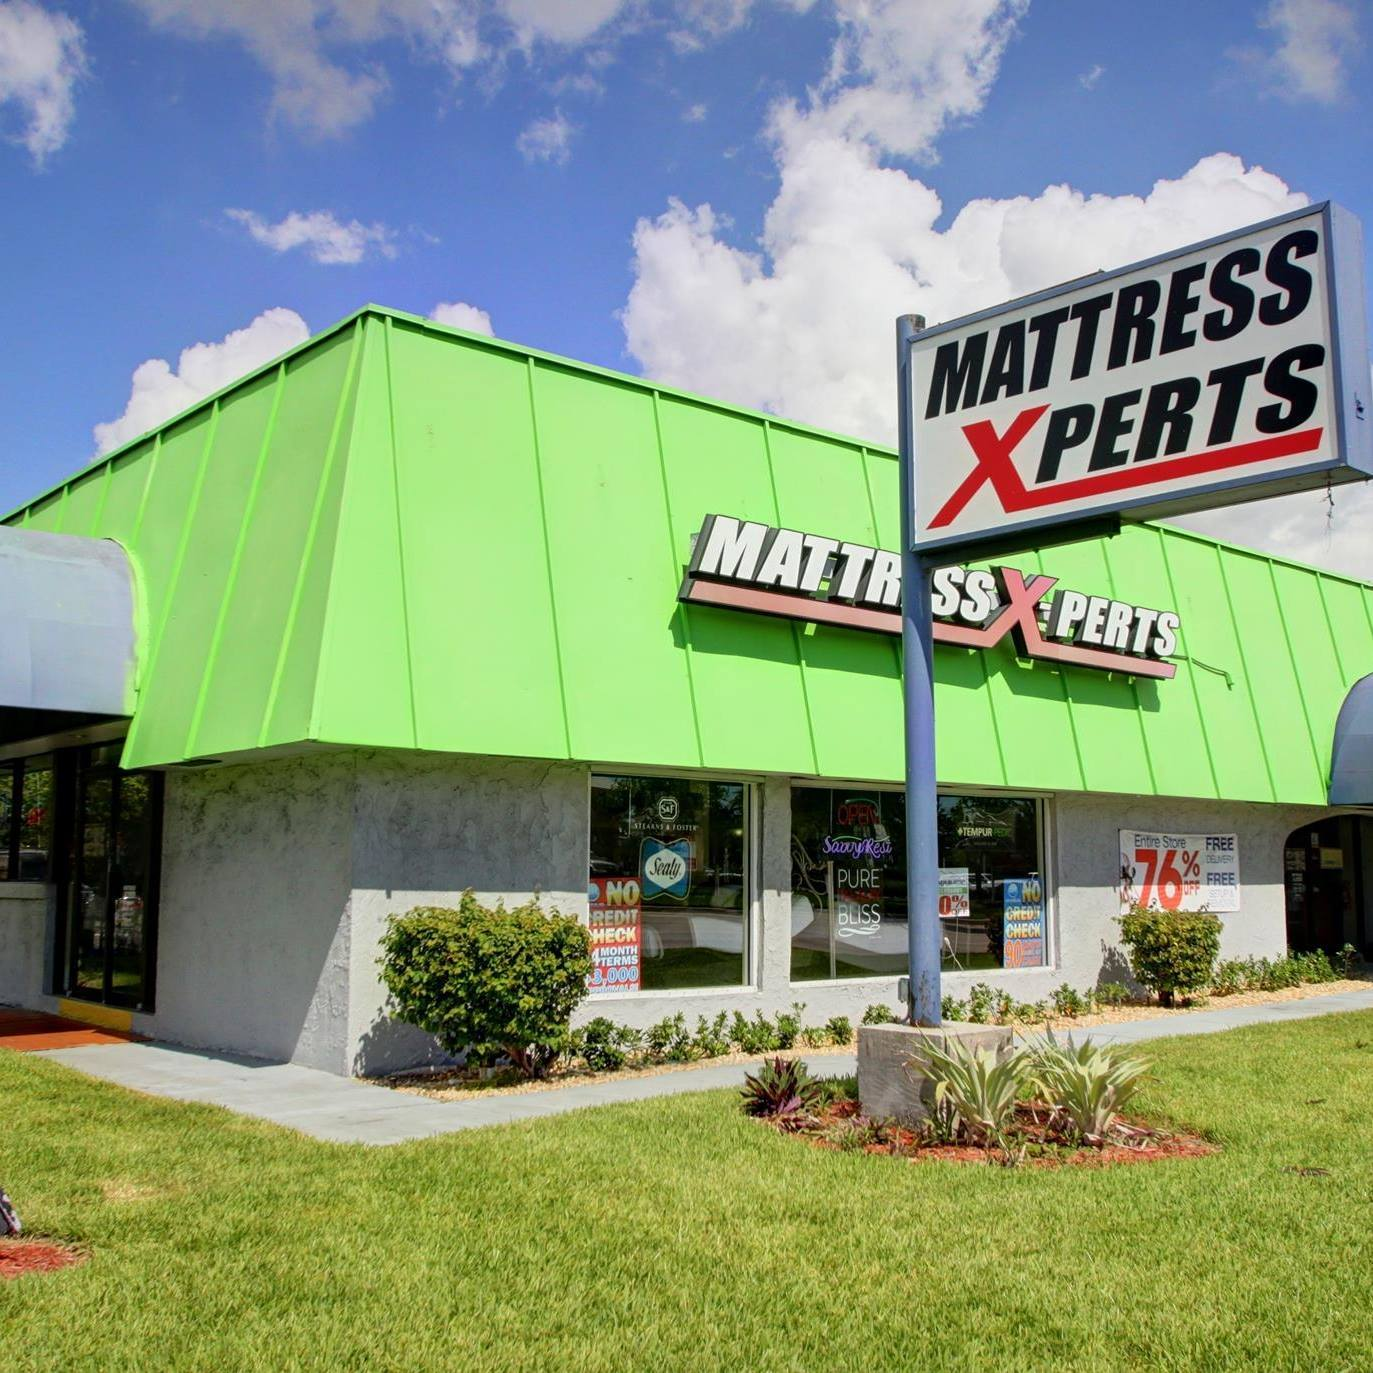 Mattress Xperts – Natural Vita Talalay Latex Mattress Store In Boynton Beach Fl